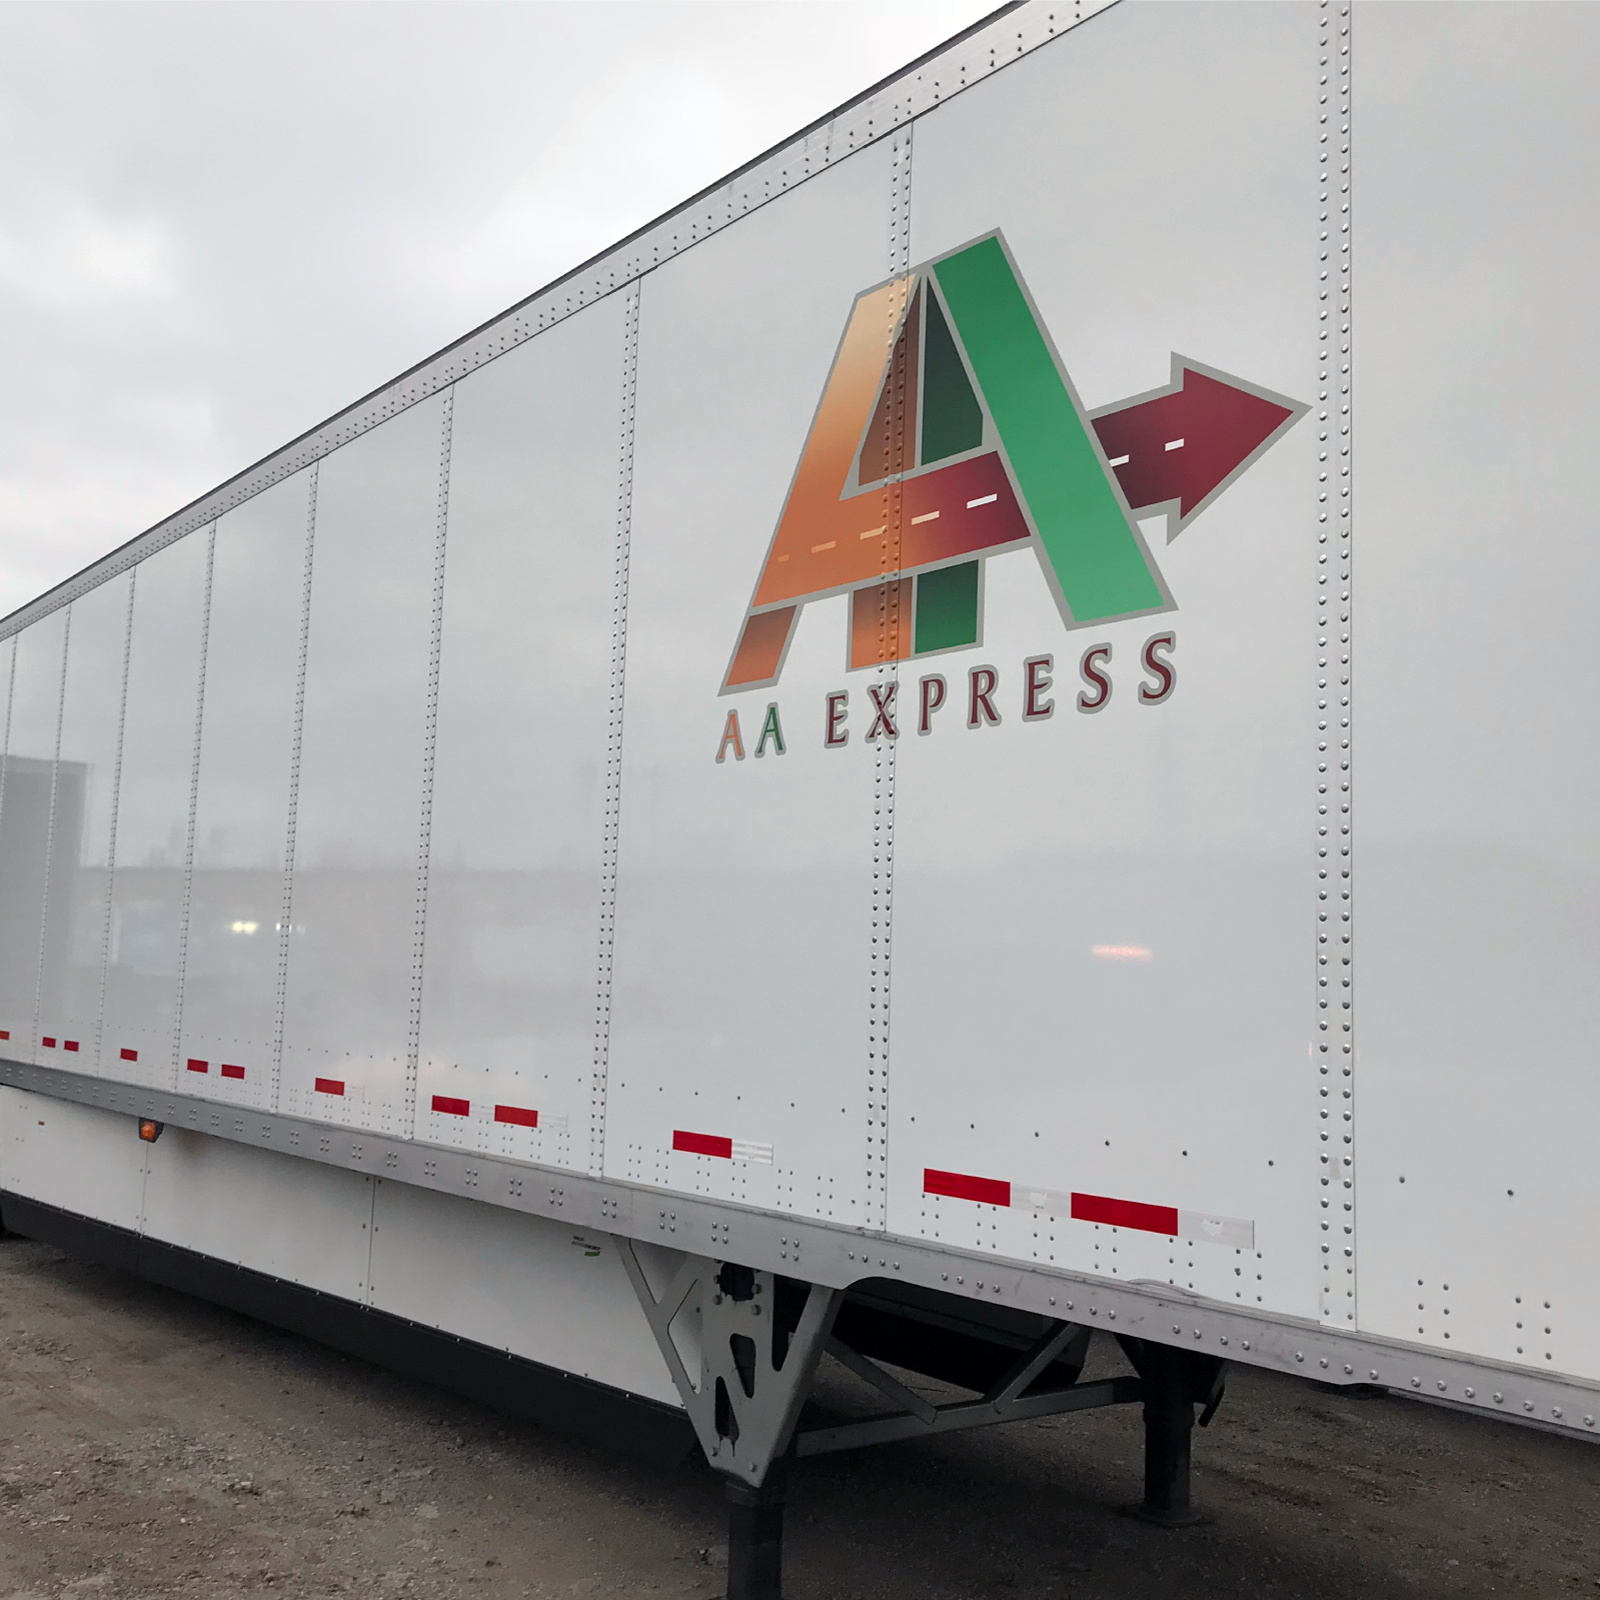 AA Express Graphic on Semi-Truck